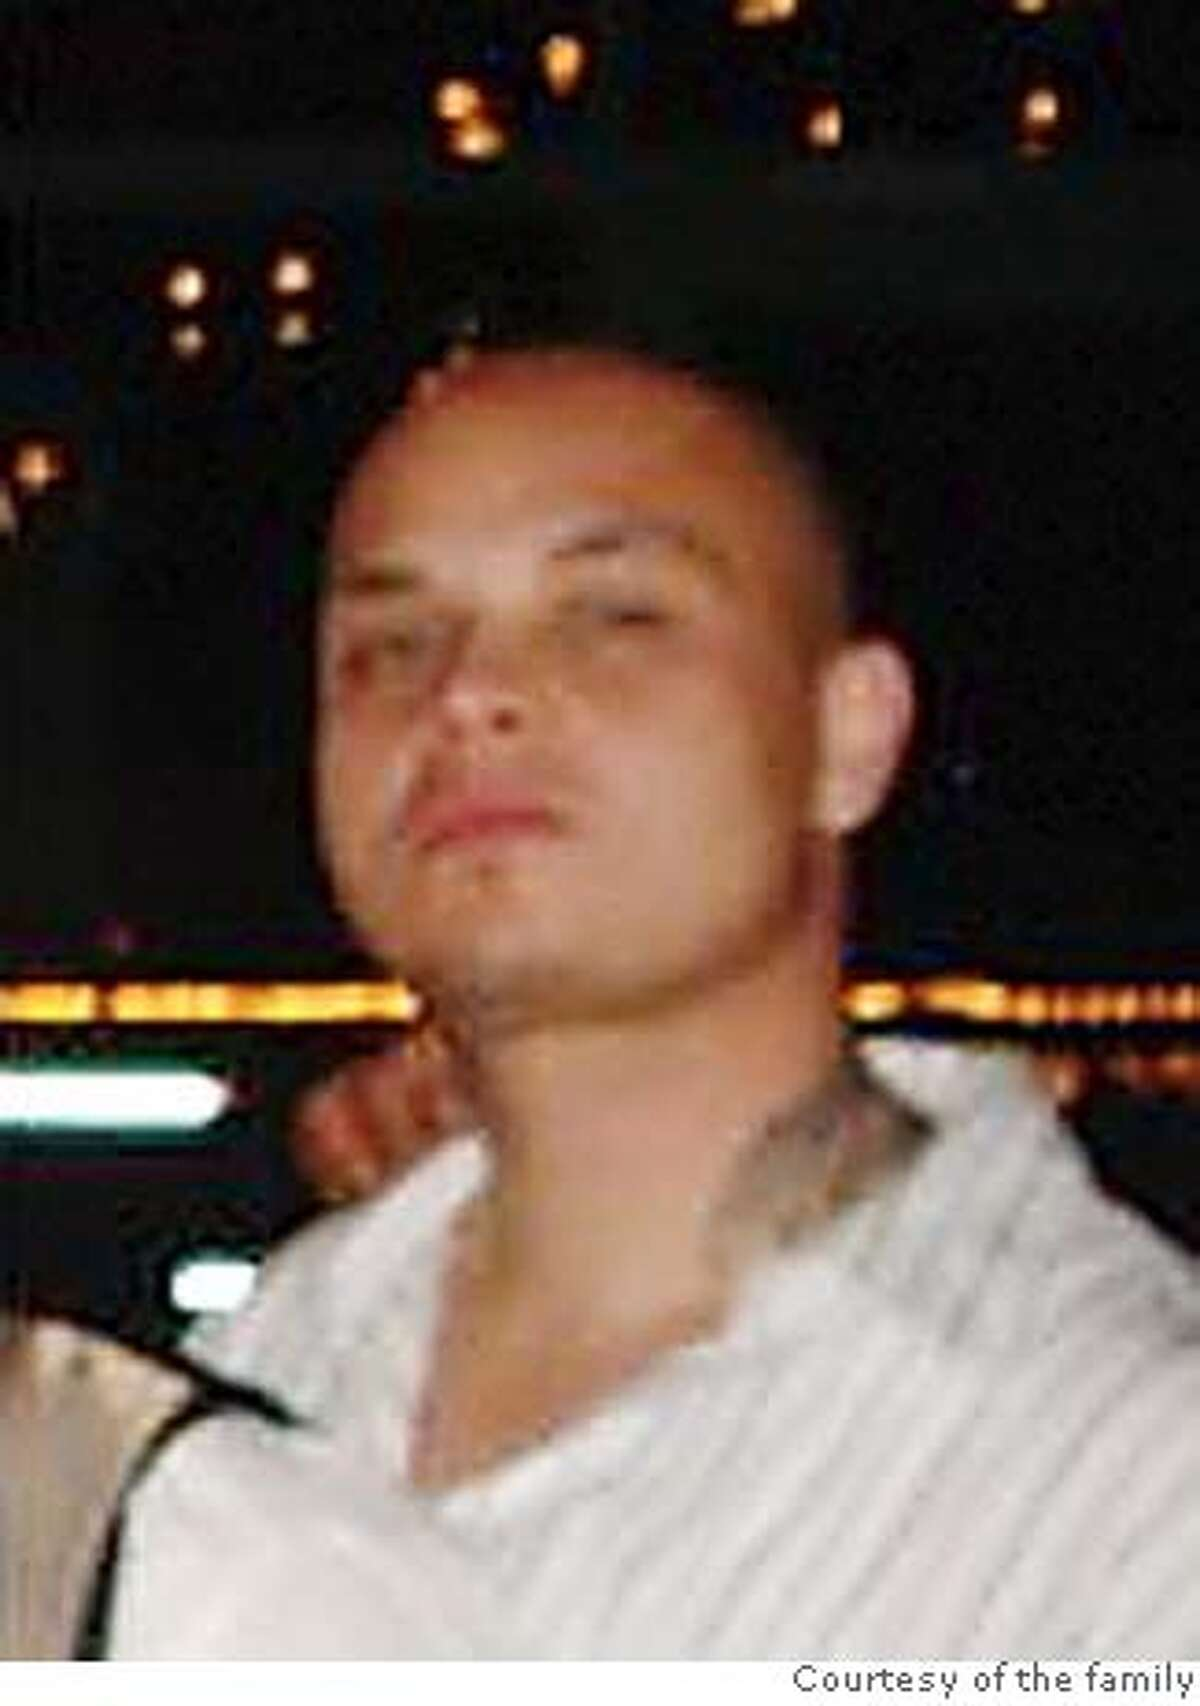 ###Live Caption:Photo of Jason De La Cruz, the victim of a shooting on Irving Street in San Francisco, Calif., on Friday, March 29, 2008. Photo courtesy of the family / Special to the Chronicle.###Caption History:Photo of Jason De La Cruz, the victim of a shooting on Irving Street in San Francisco, Calif., on Friday, March 29, 2008. Photo courtesy of the family / Special to the Chronicle.###Notes:###Special Instructions:Rights for each: OK for Gate and Chronicle use. No limit on repeated use.